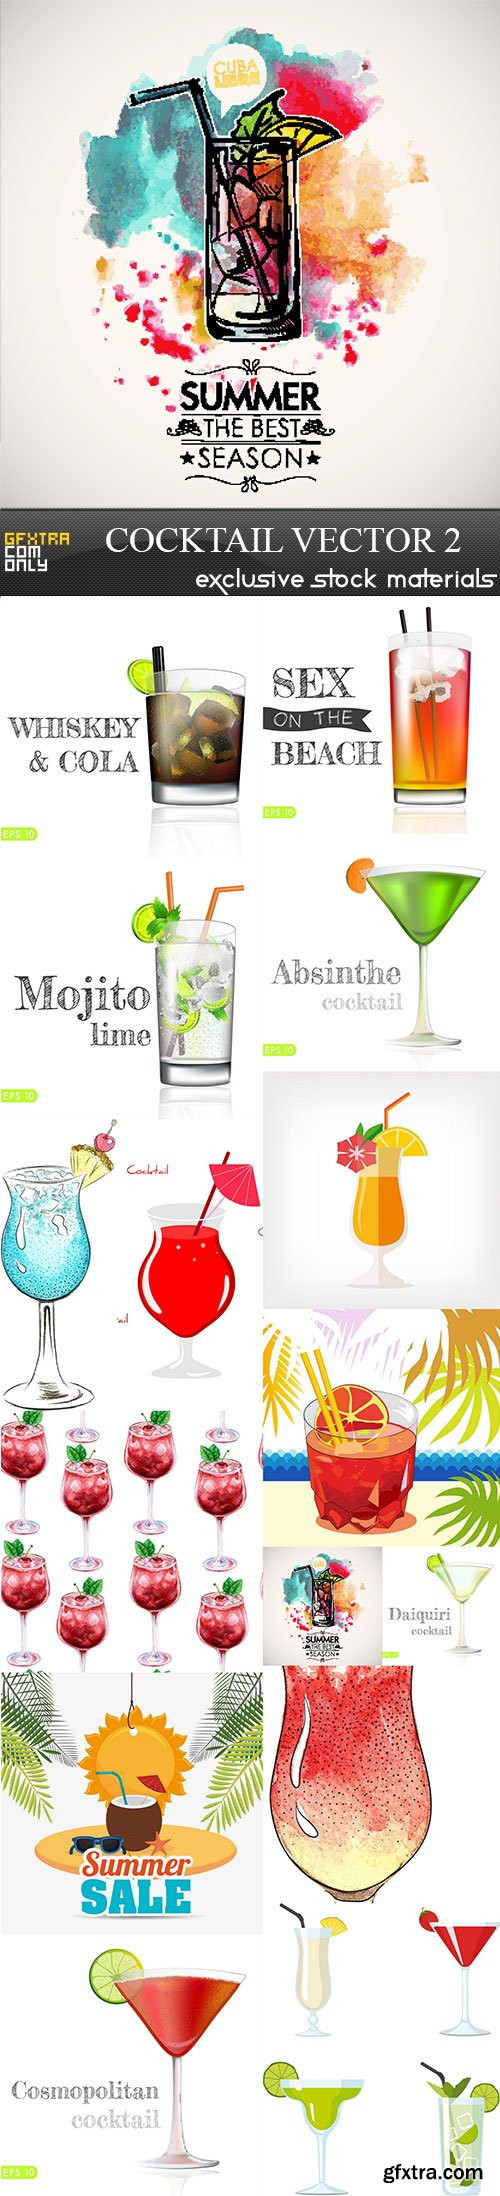 Cocktail vector 2, 15 x EPS